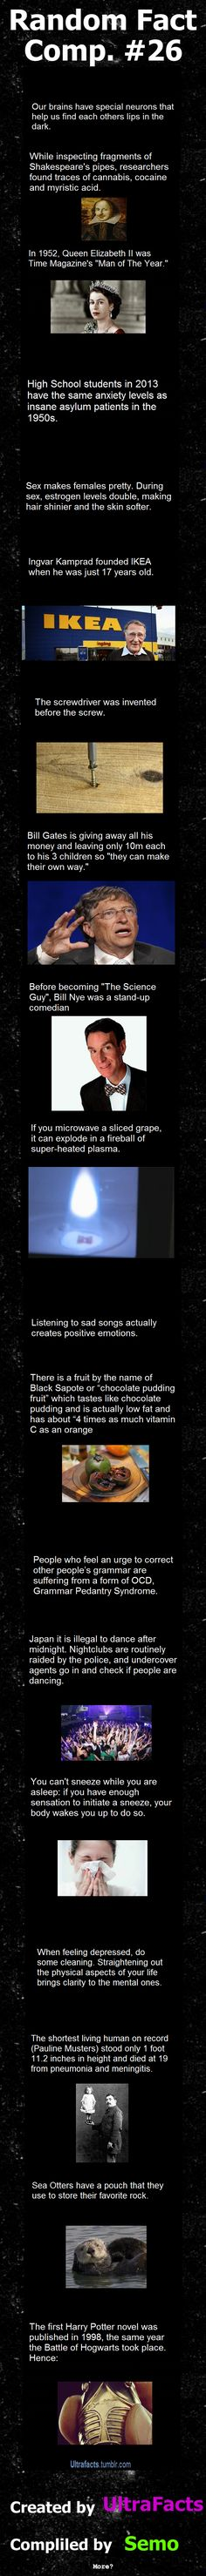 Random Fact Comp. 26  // funny pictures - funny photos - funny images - funny pics - funny quotes - #lol #humor #funnypictures